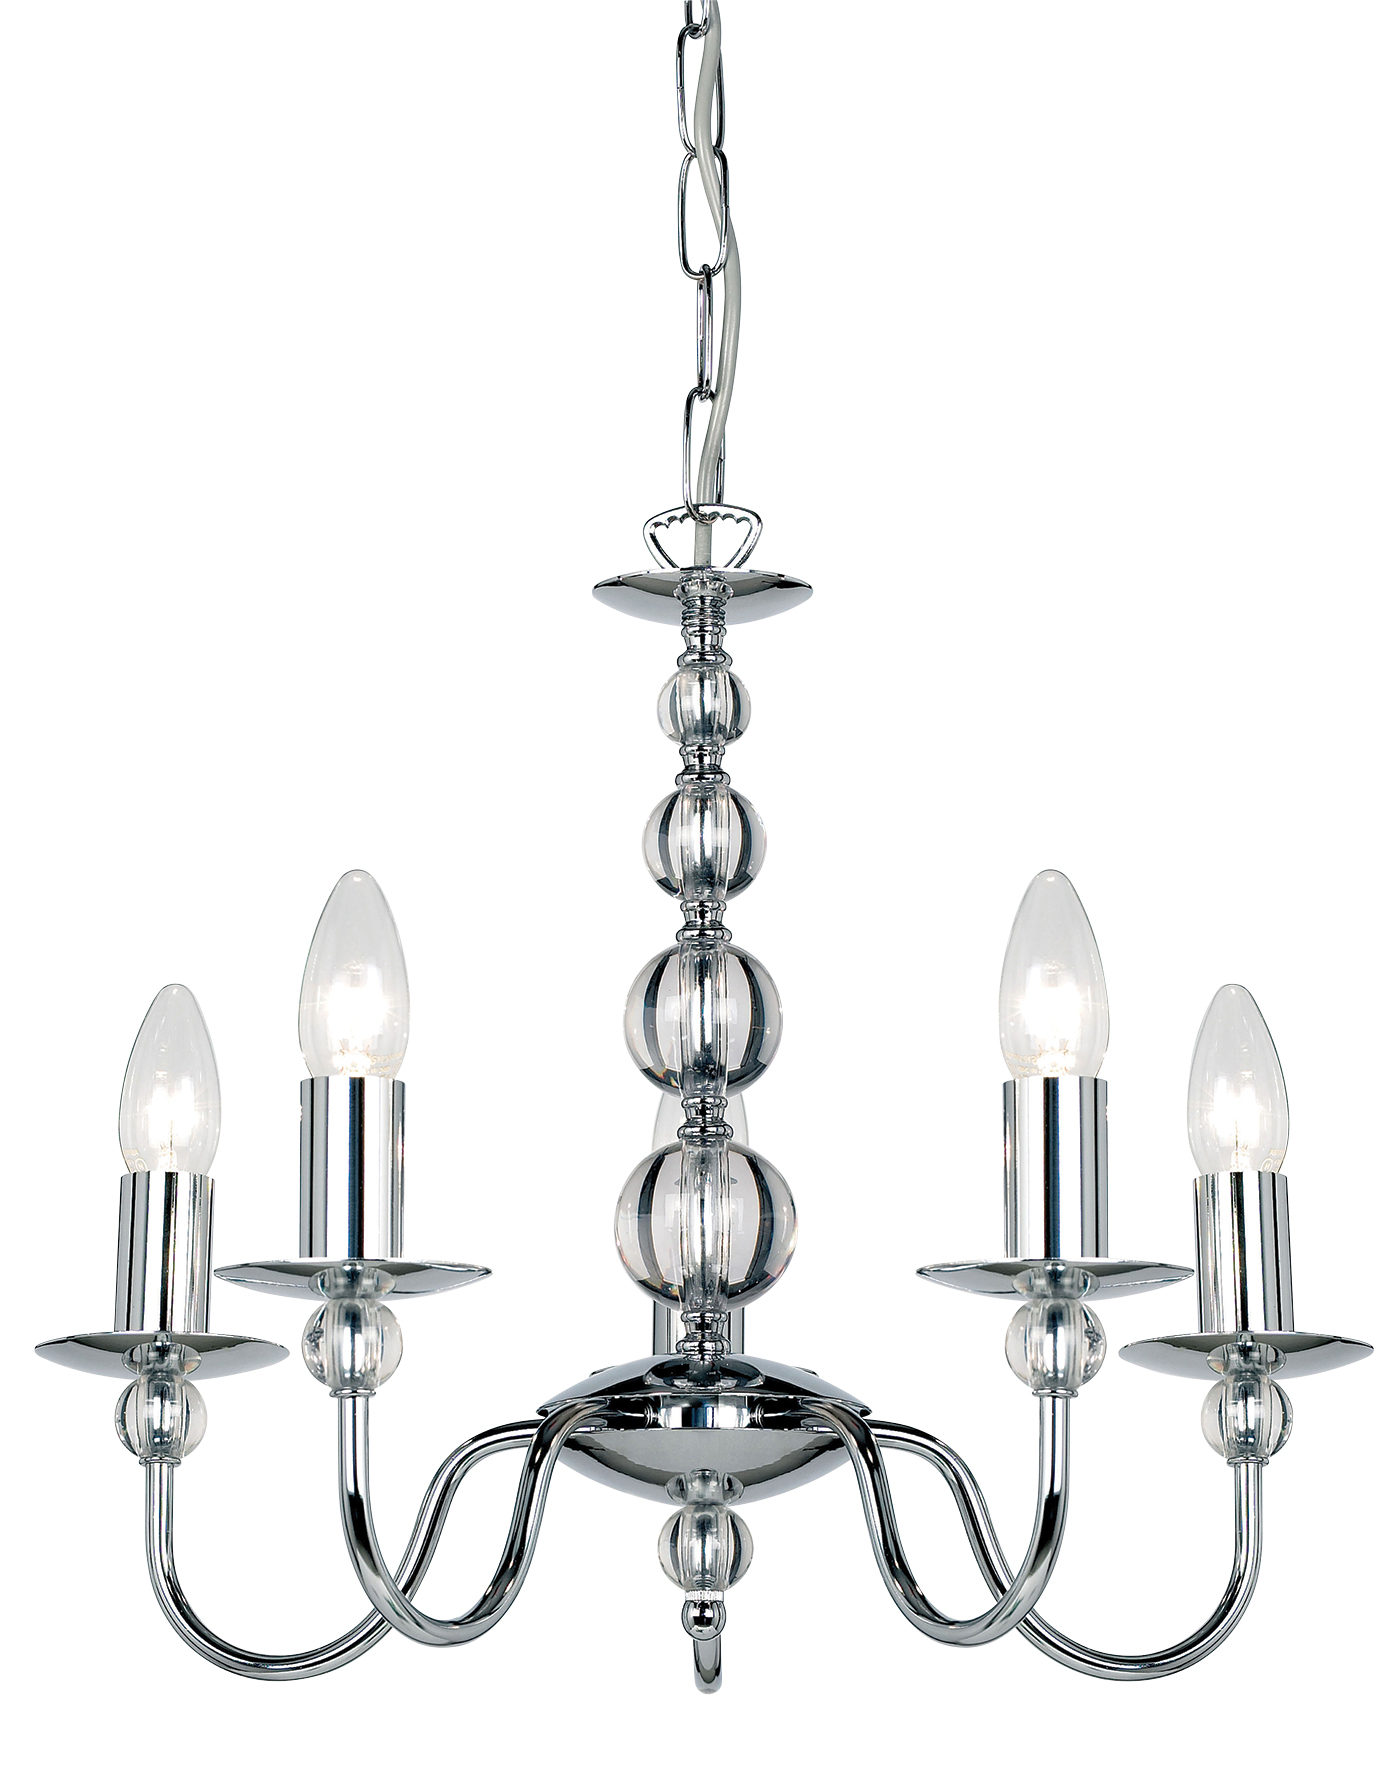 Endon Parkstone chandelier 5x 60W Chrome effect plate & clear glass